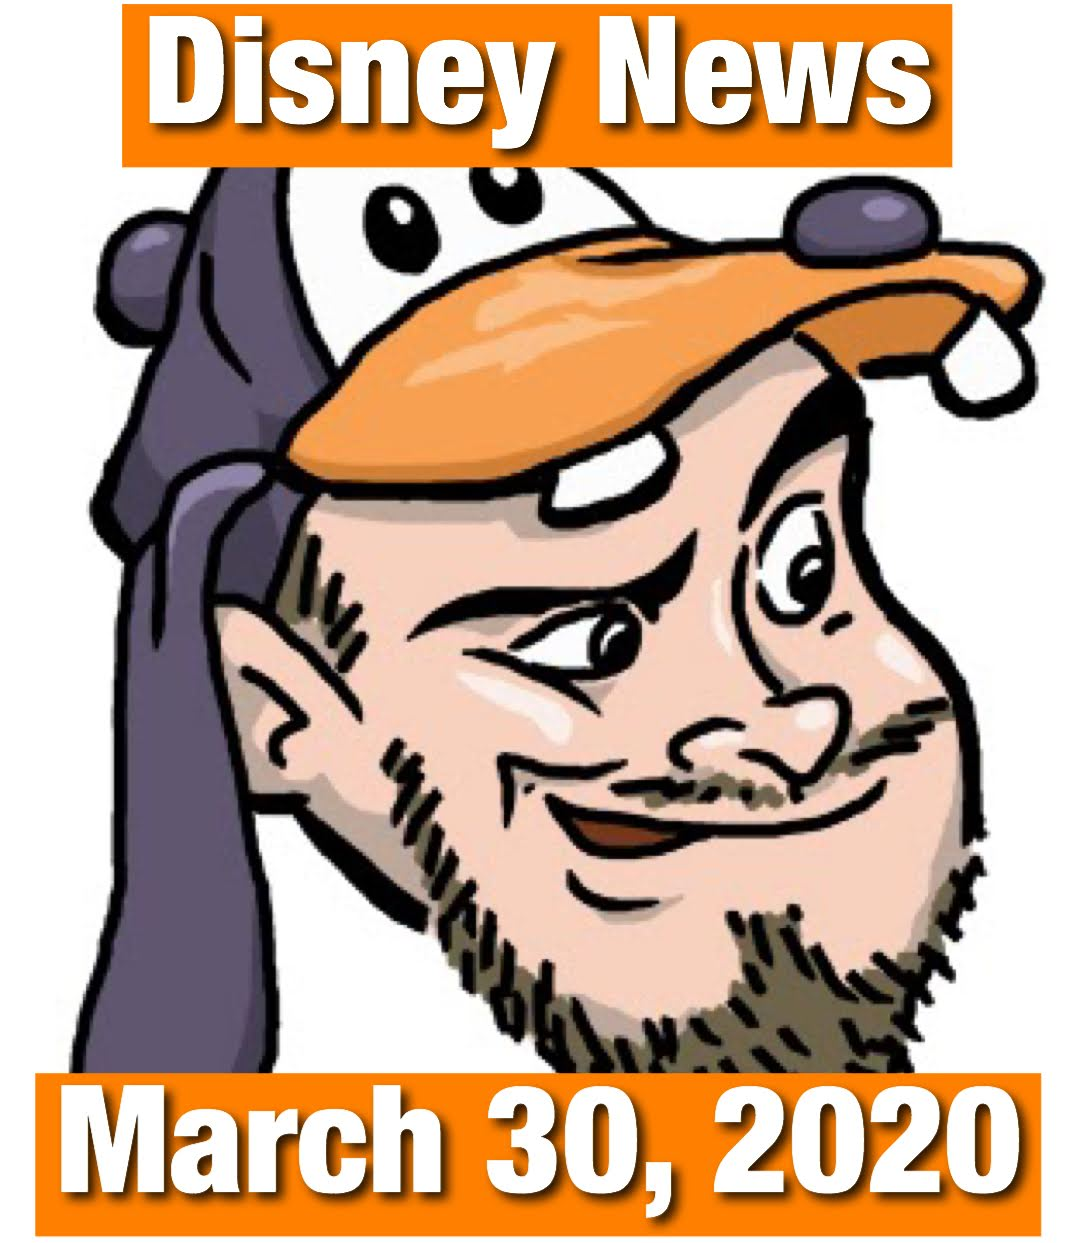 Disney News March 30, 2020